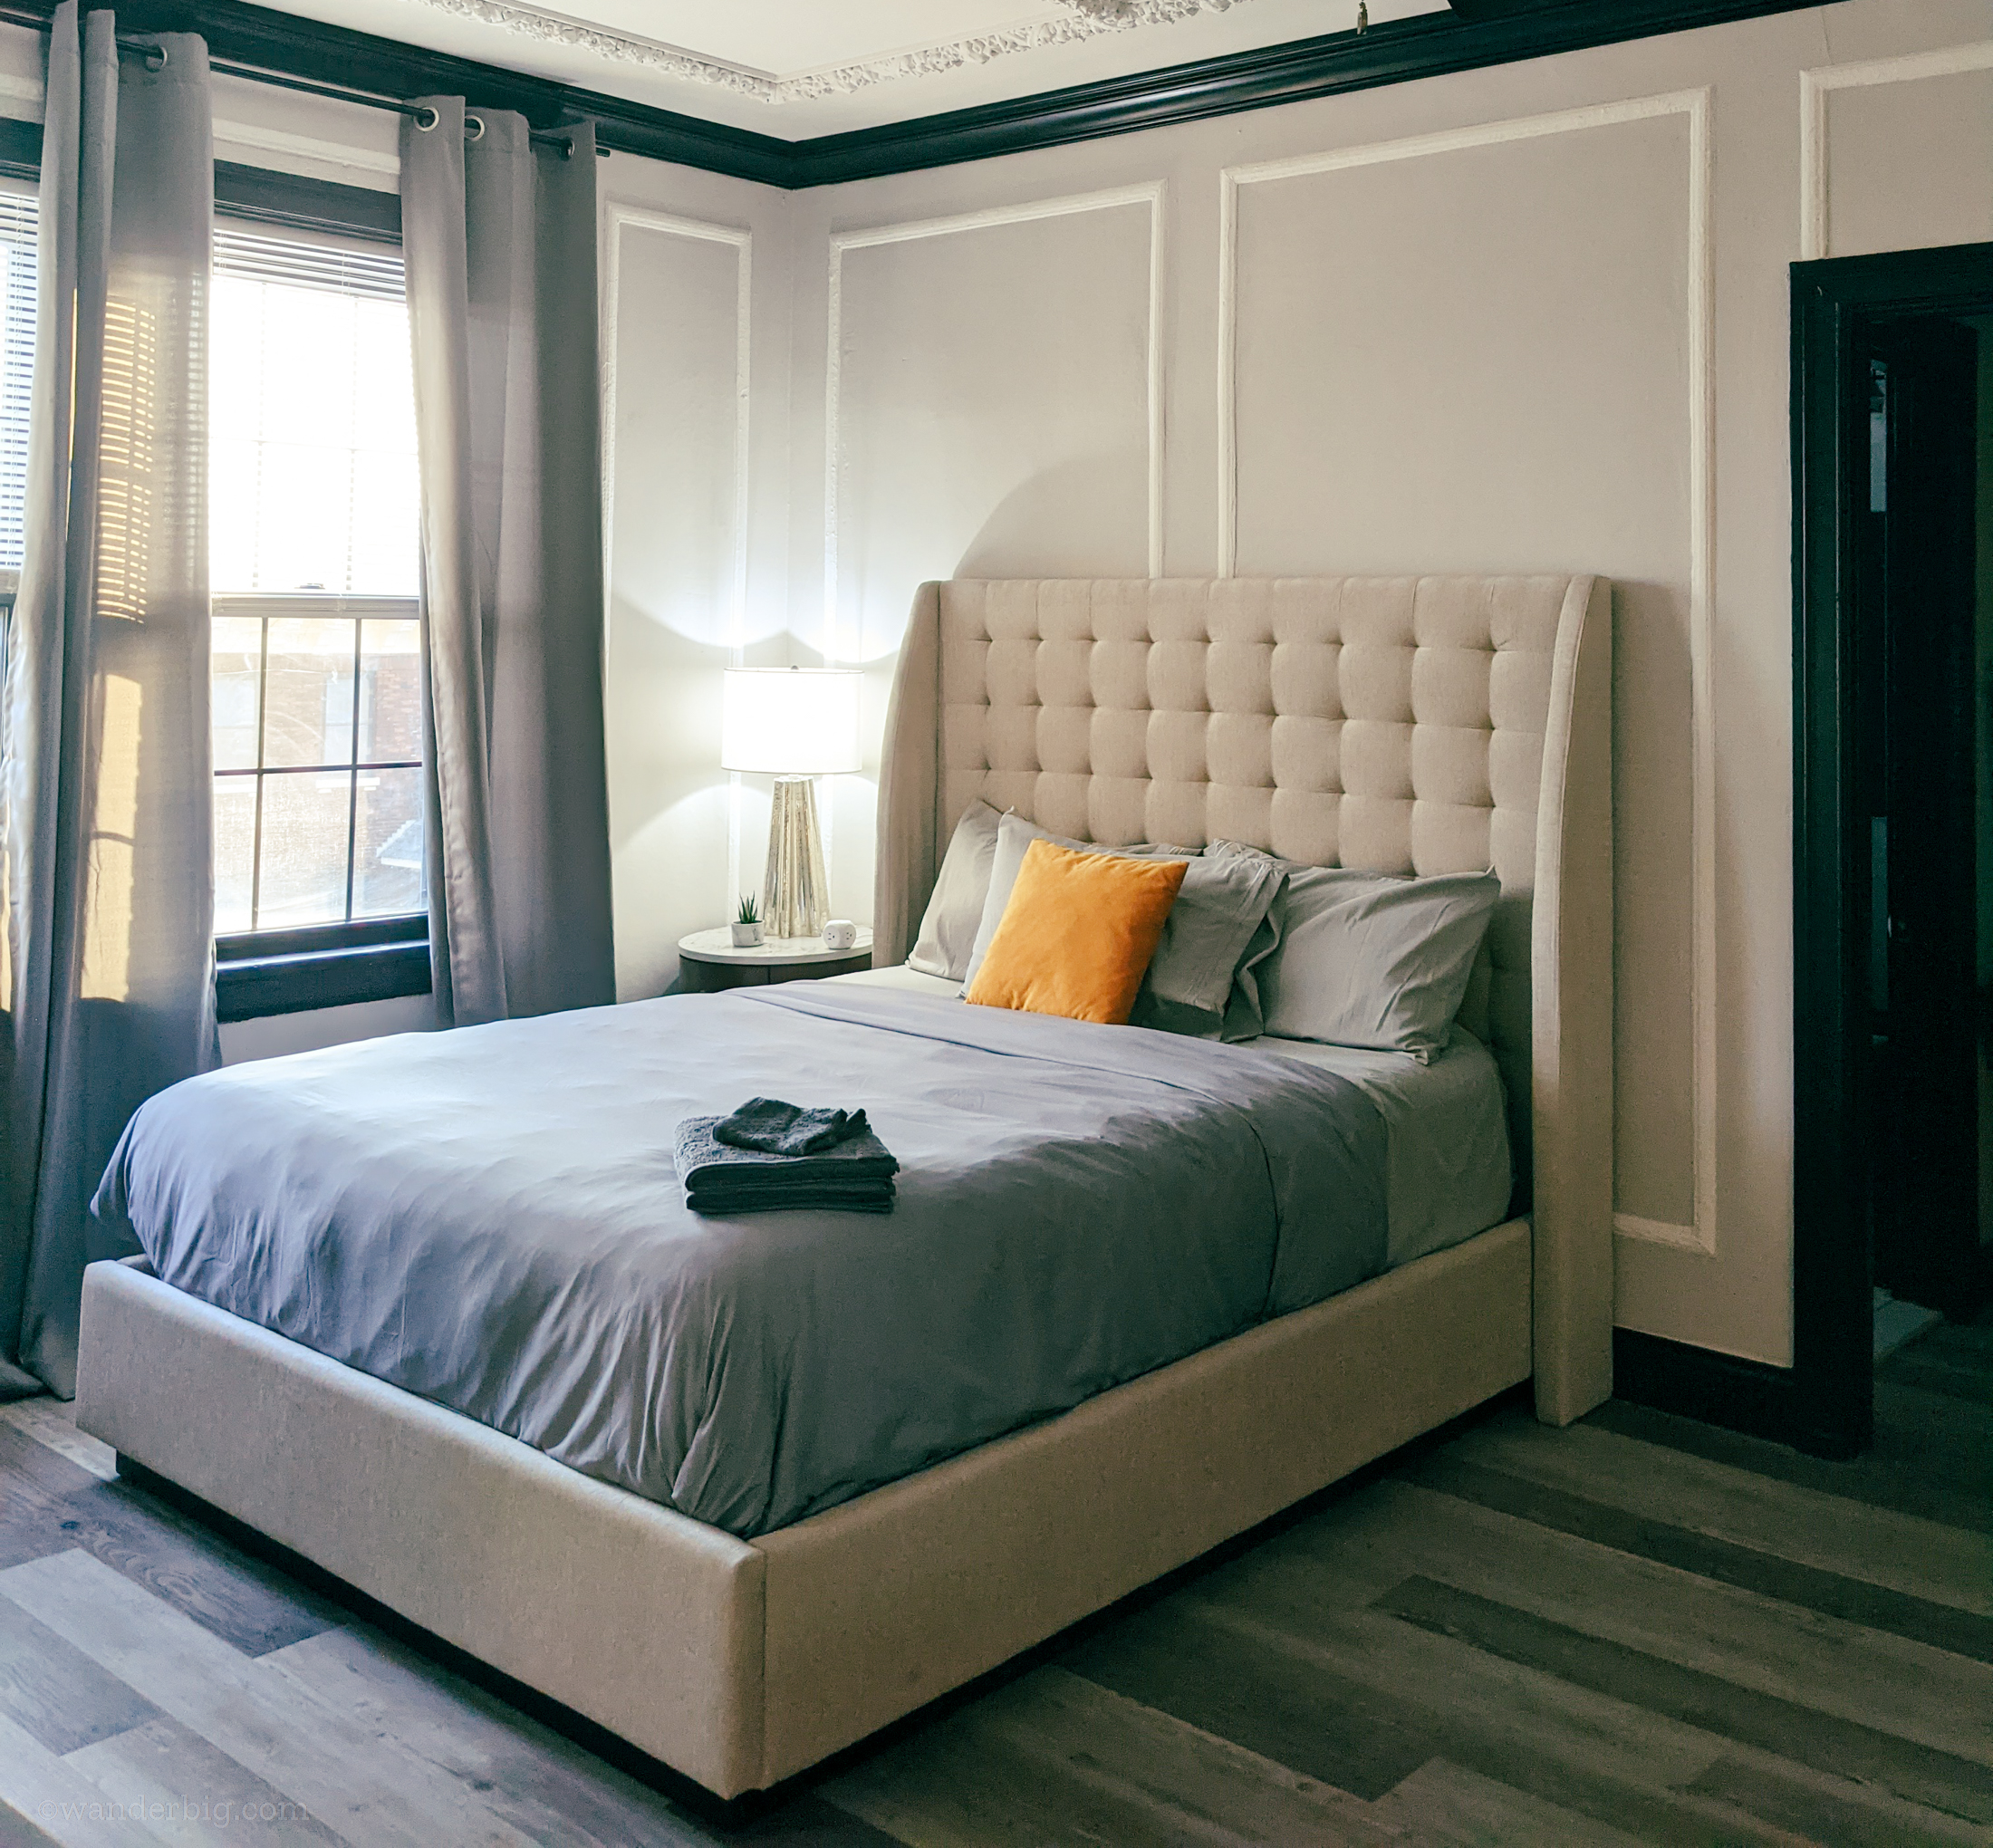 A bed in an airbnb apartment, illustrating the importance of selecting a comfortable space for a monthly airbnb stay.